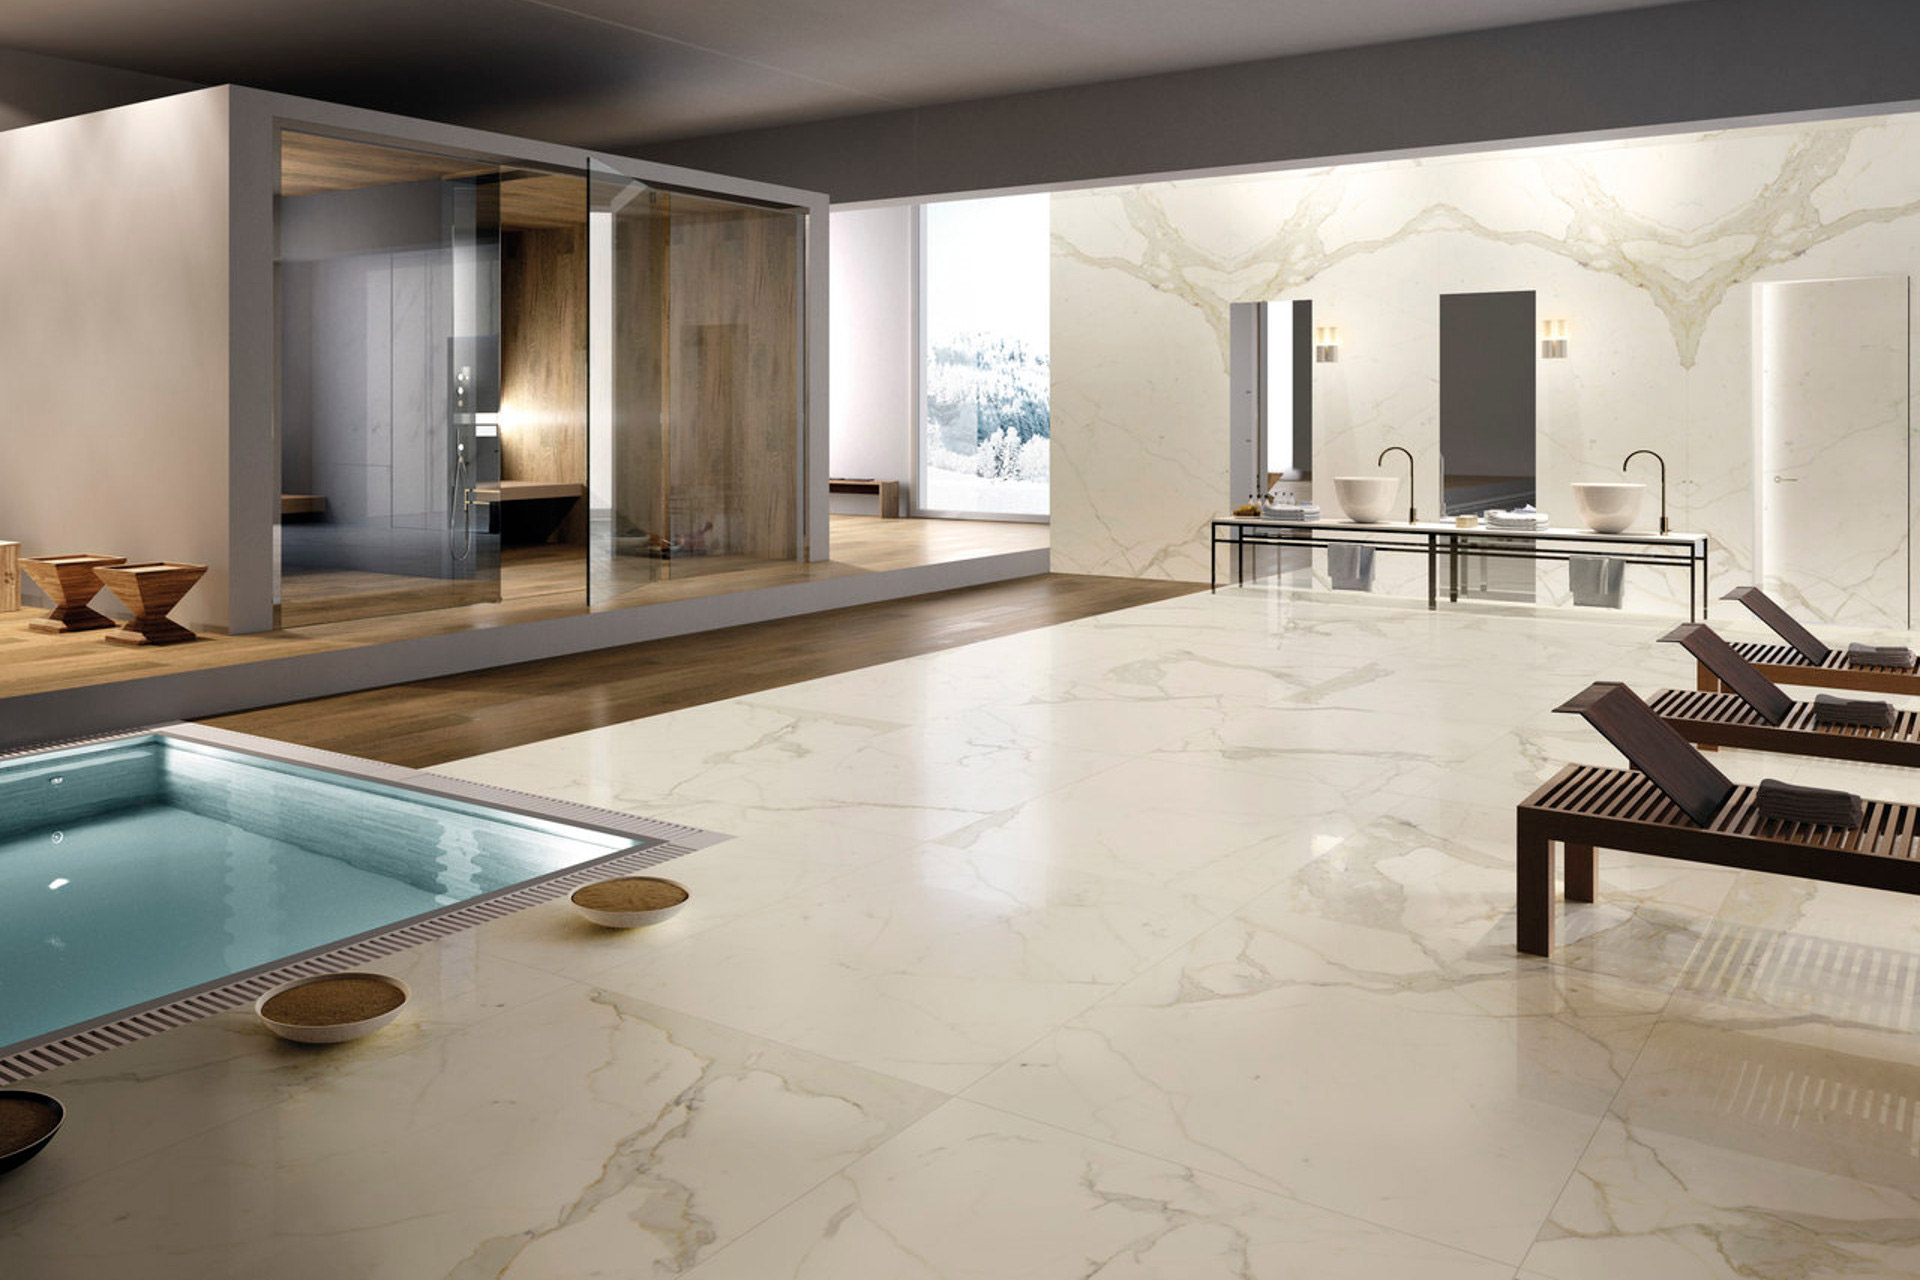 Calacatta SPACES SECONDED BY NEW CERAMIC MATERIALS